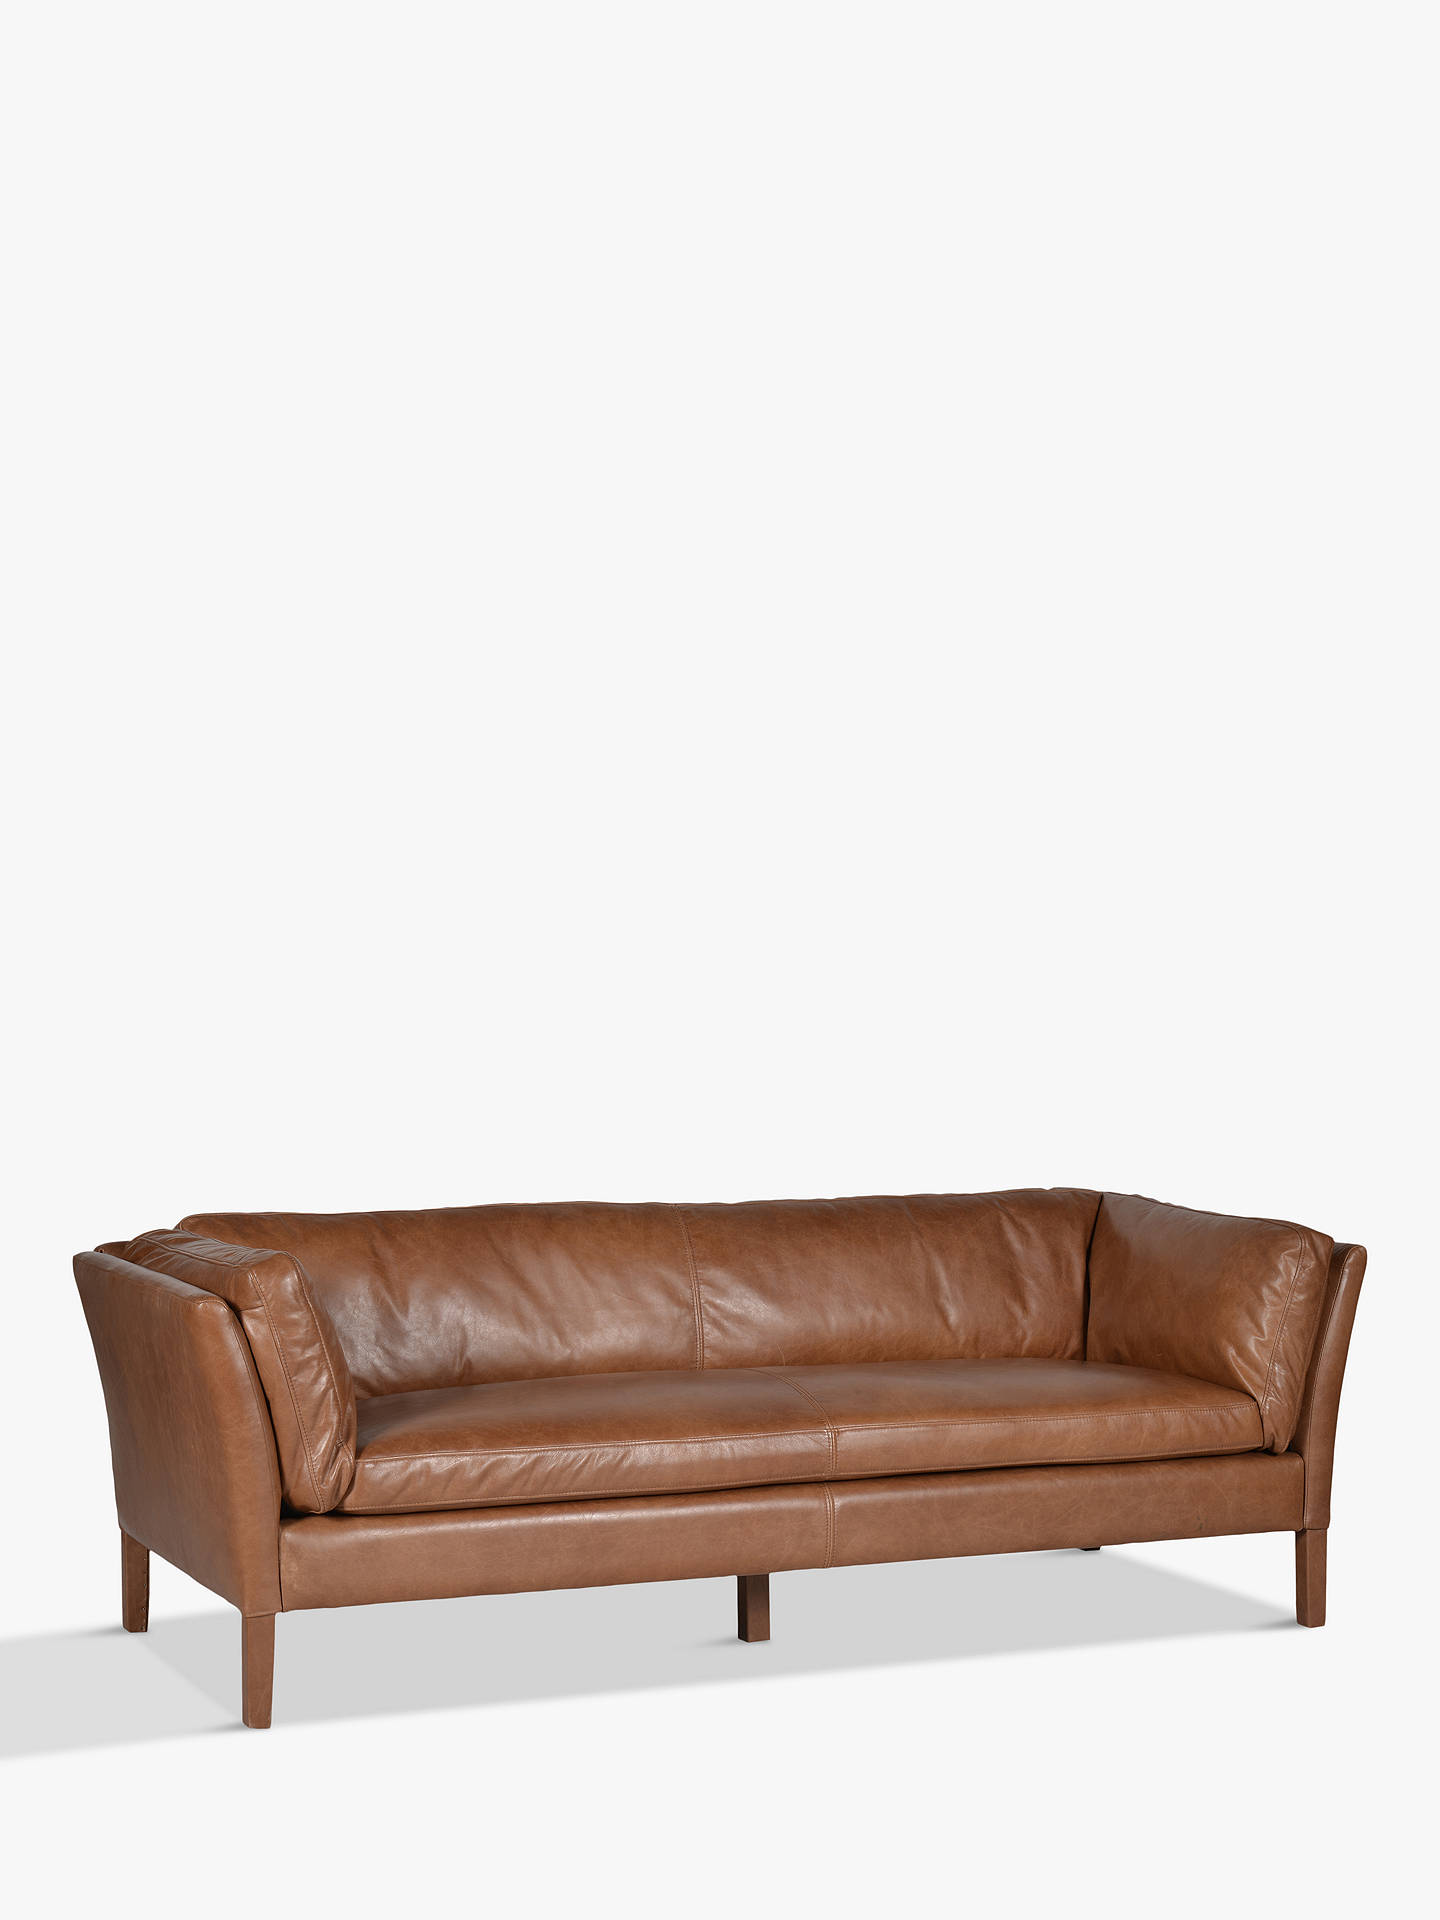 Halo Groucho Large 3 Seater Leather Sofa at John Lewis & Partners